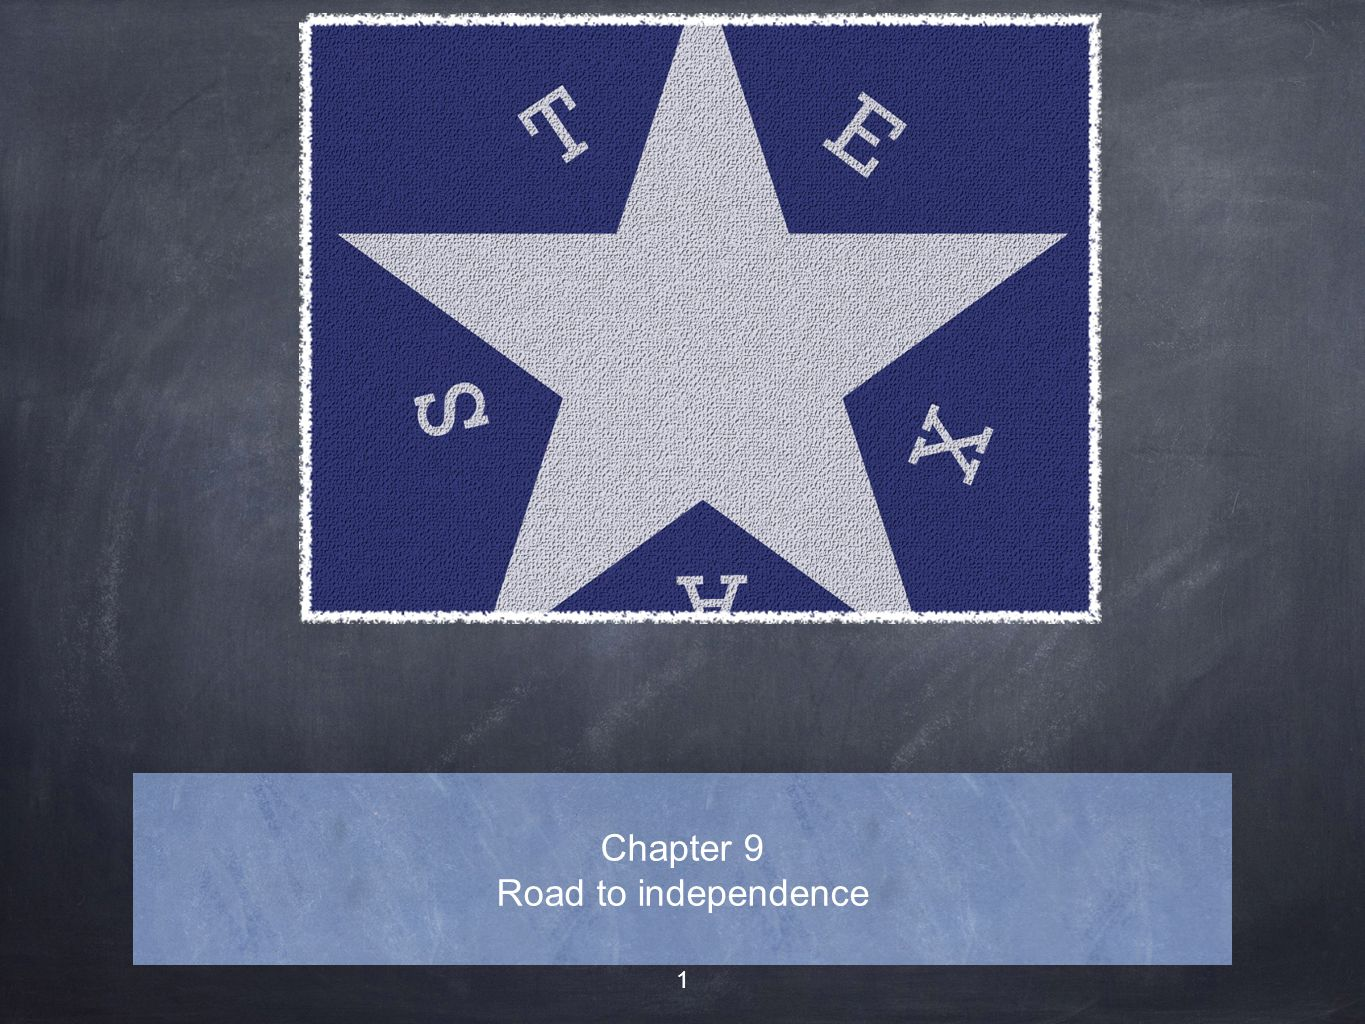 Chapter 9 Road to independence